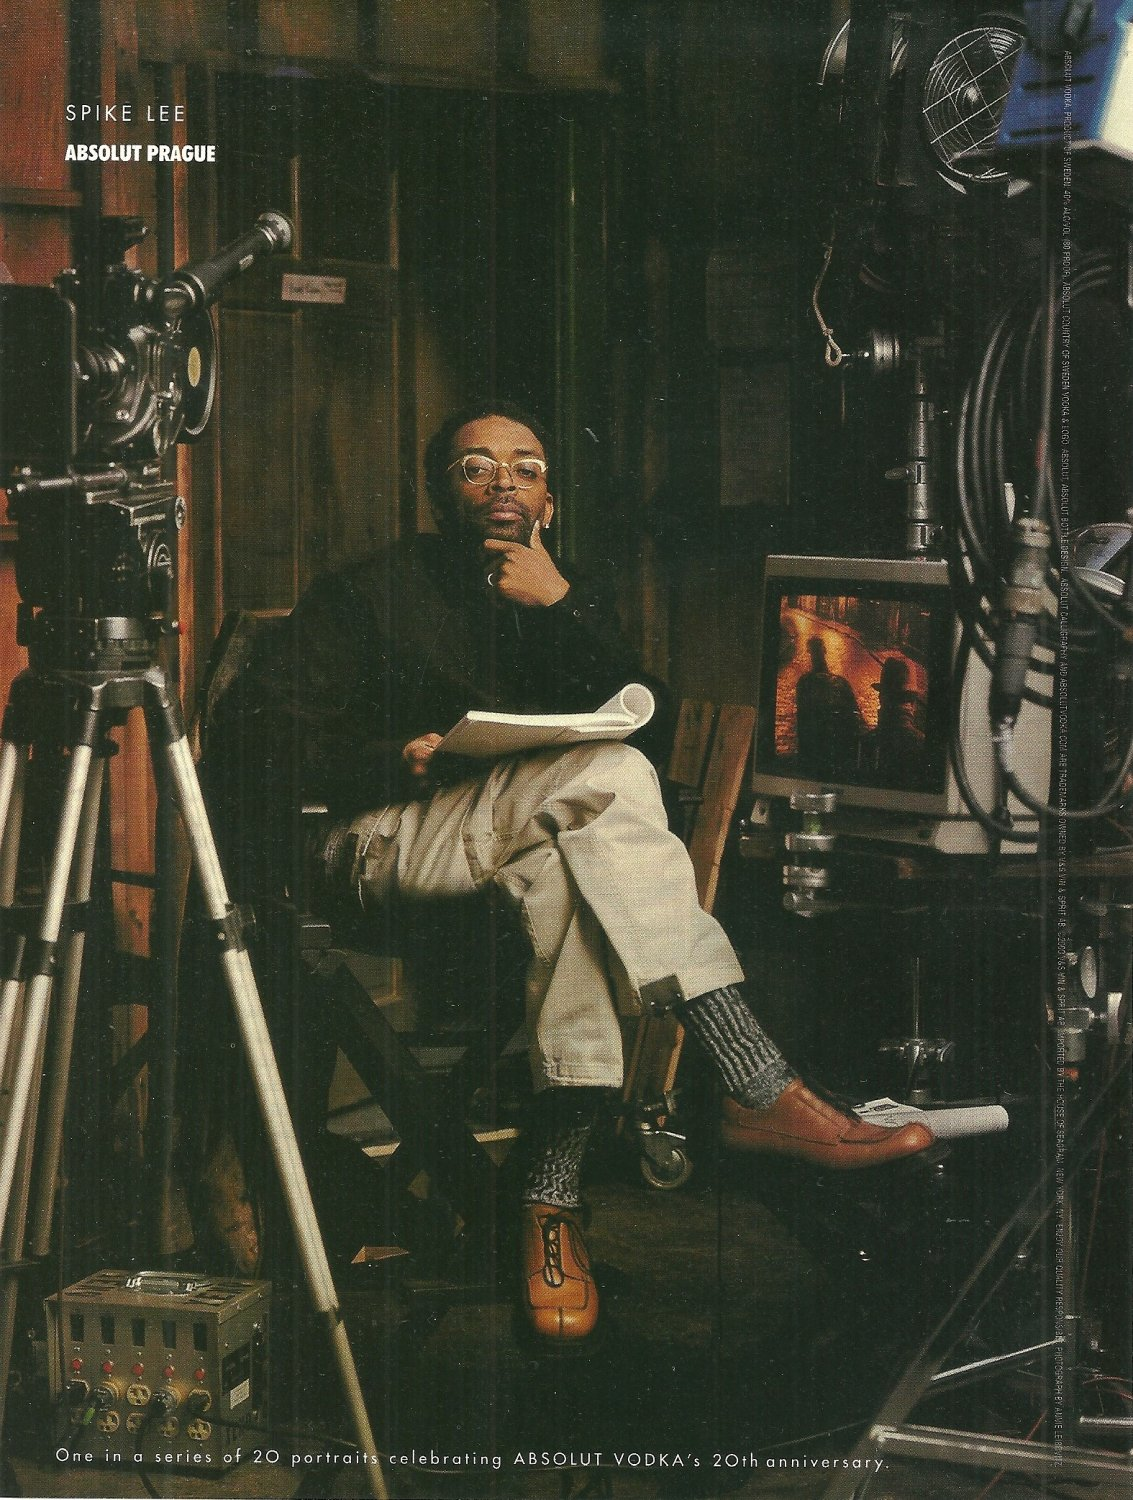 ABSOLUT PRAGUE Vodka Magazine Ad Featuring Spike Lee NOT COMMON!